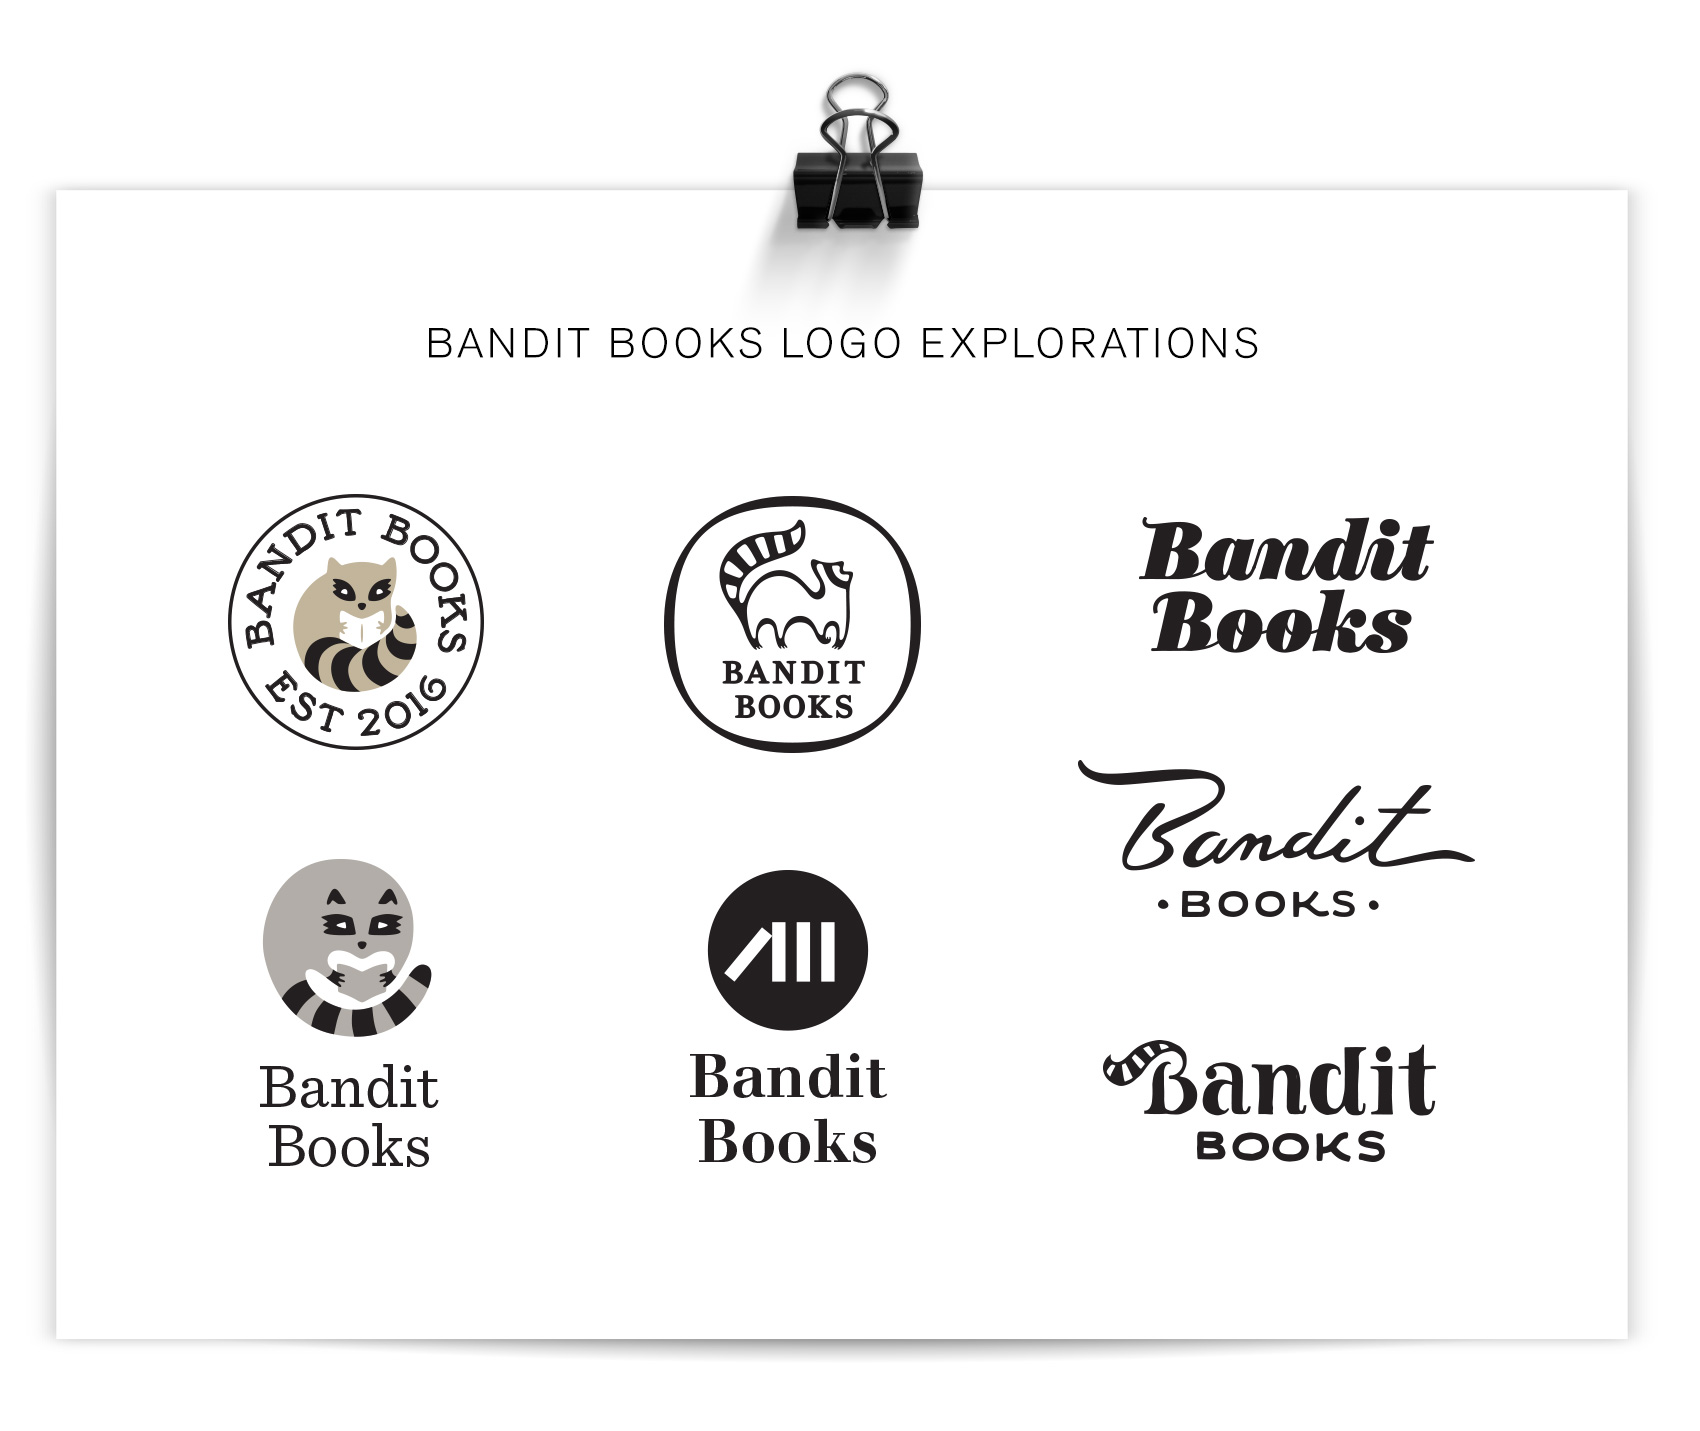 lots of raccoon centric logo explorations for Bandit Books